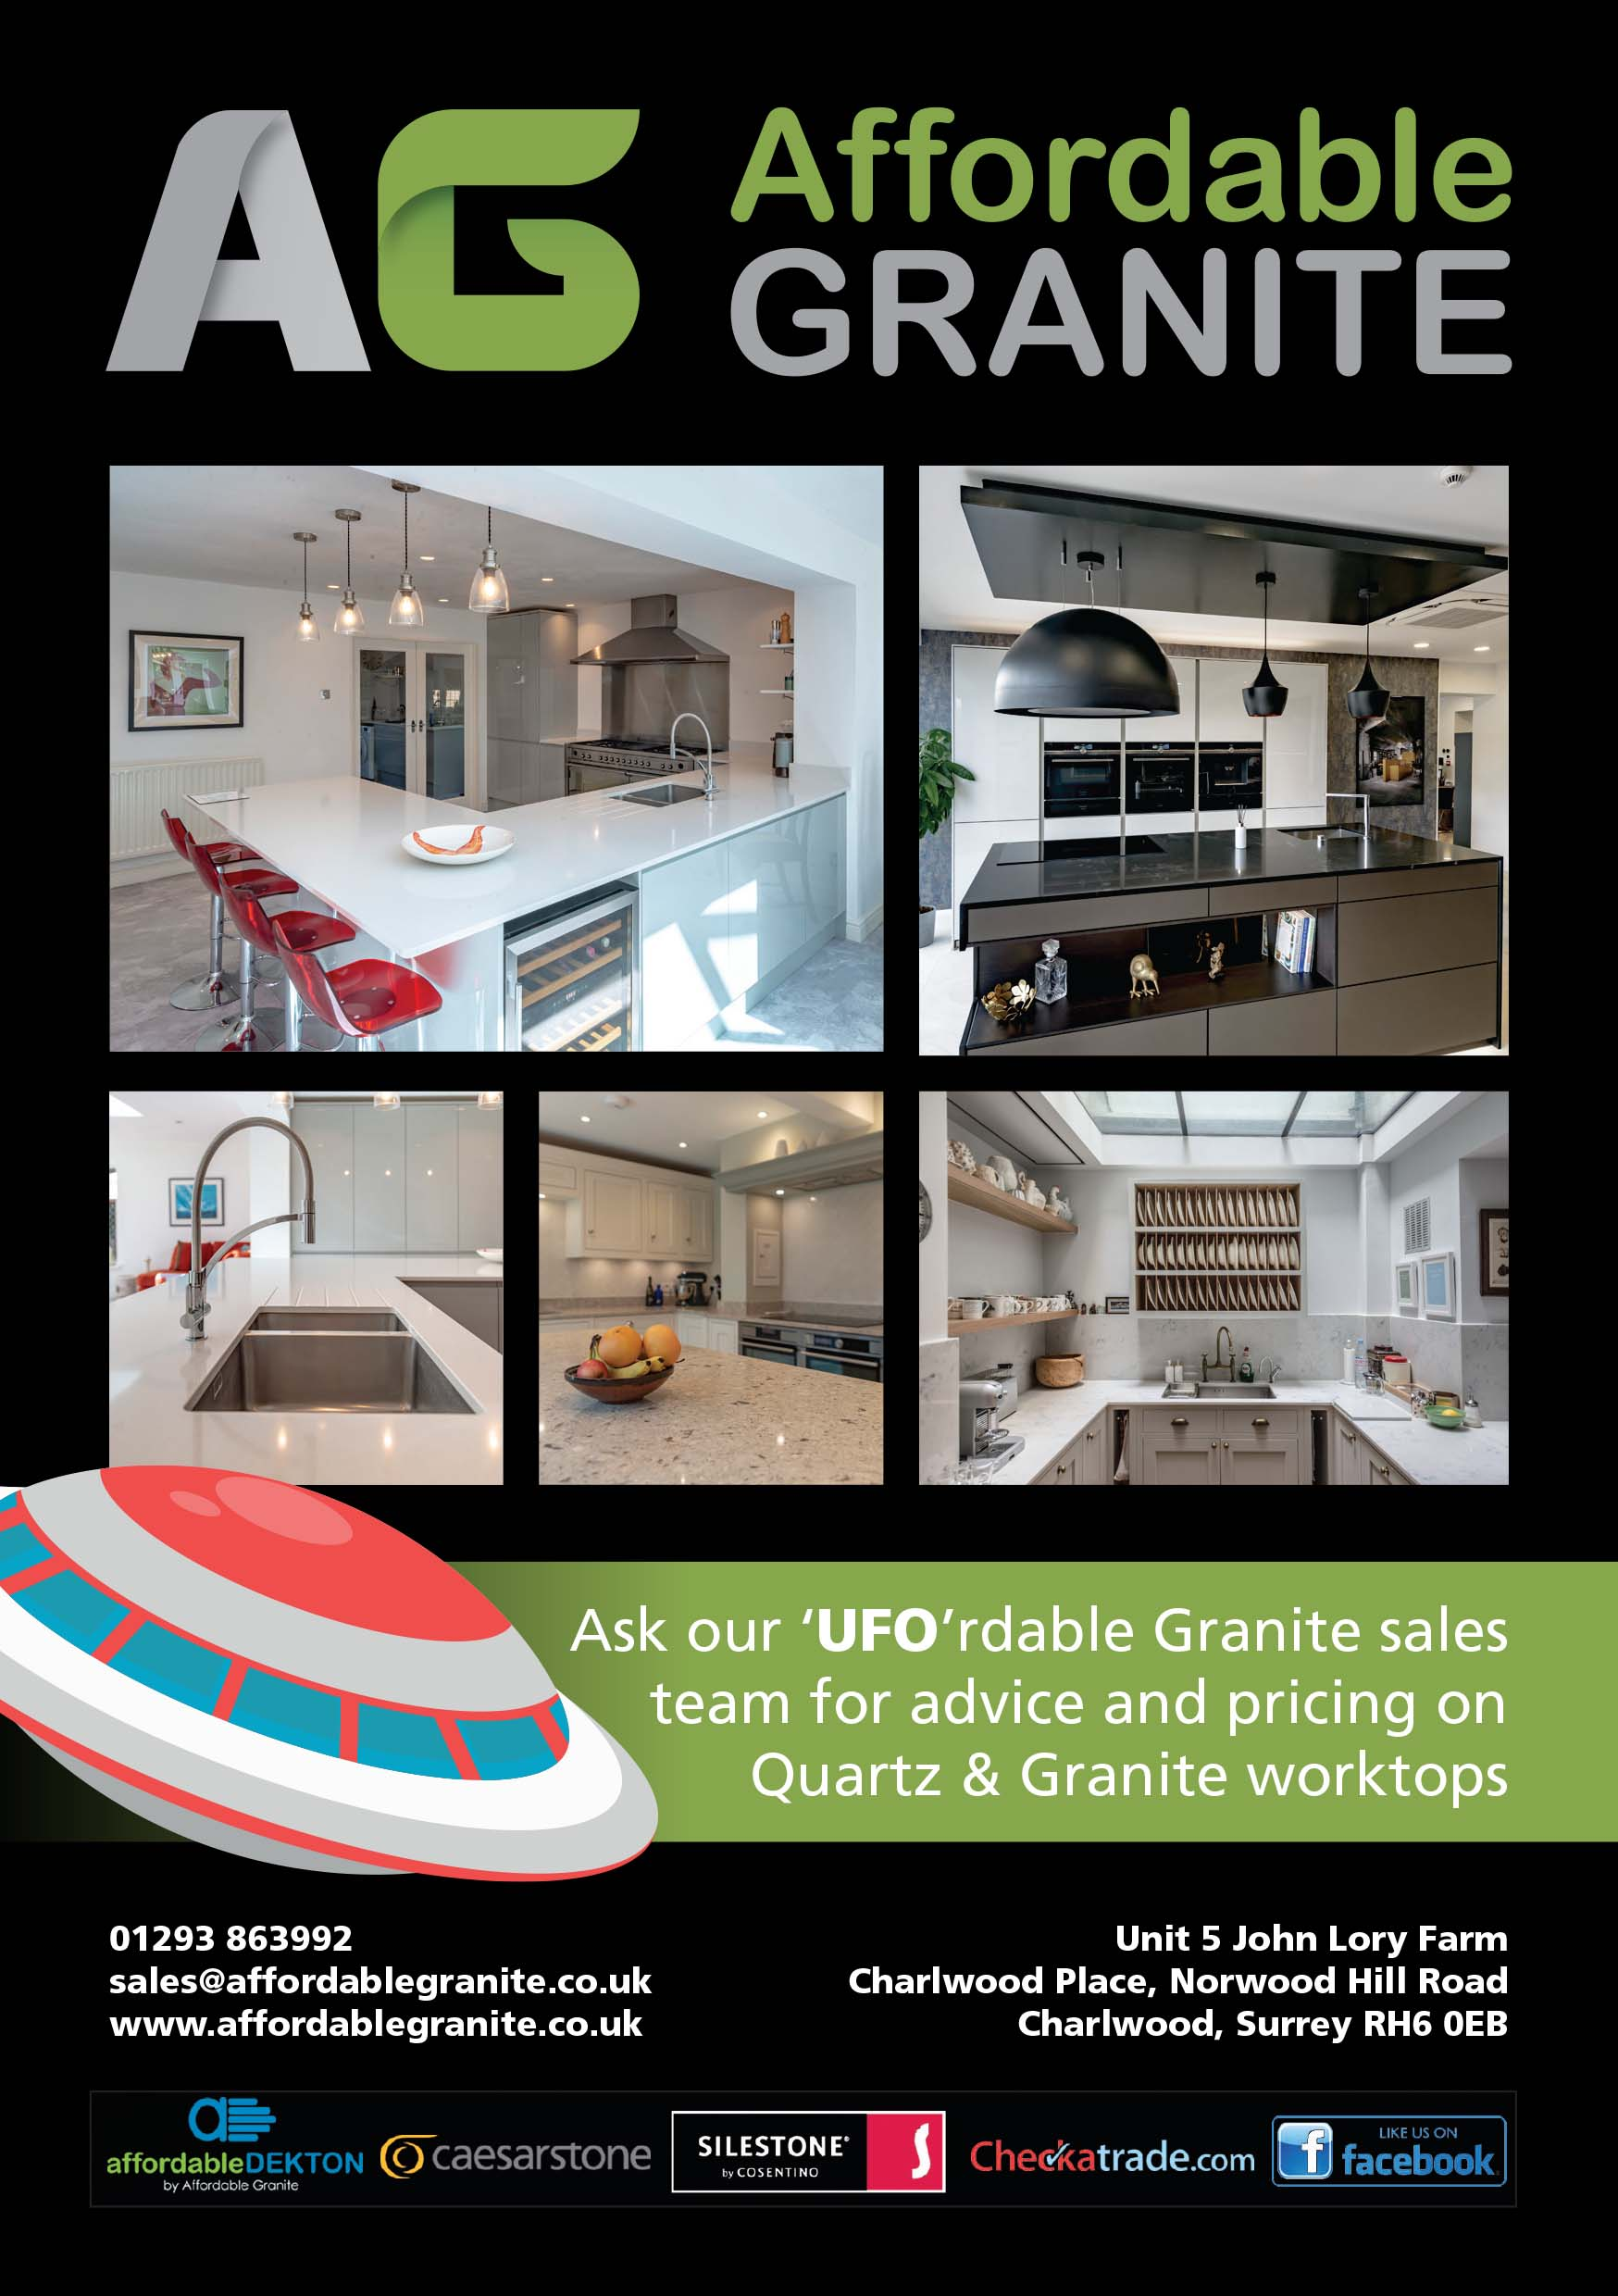 Affordable granite godalming town show round table sponsors